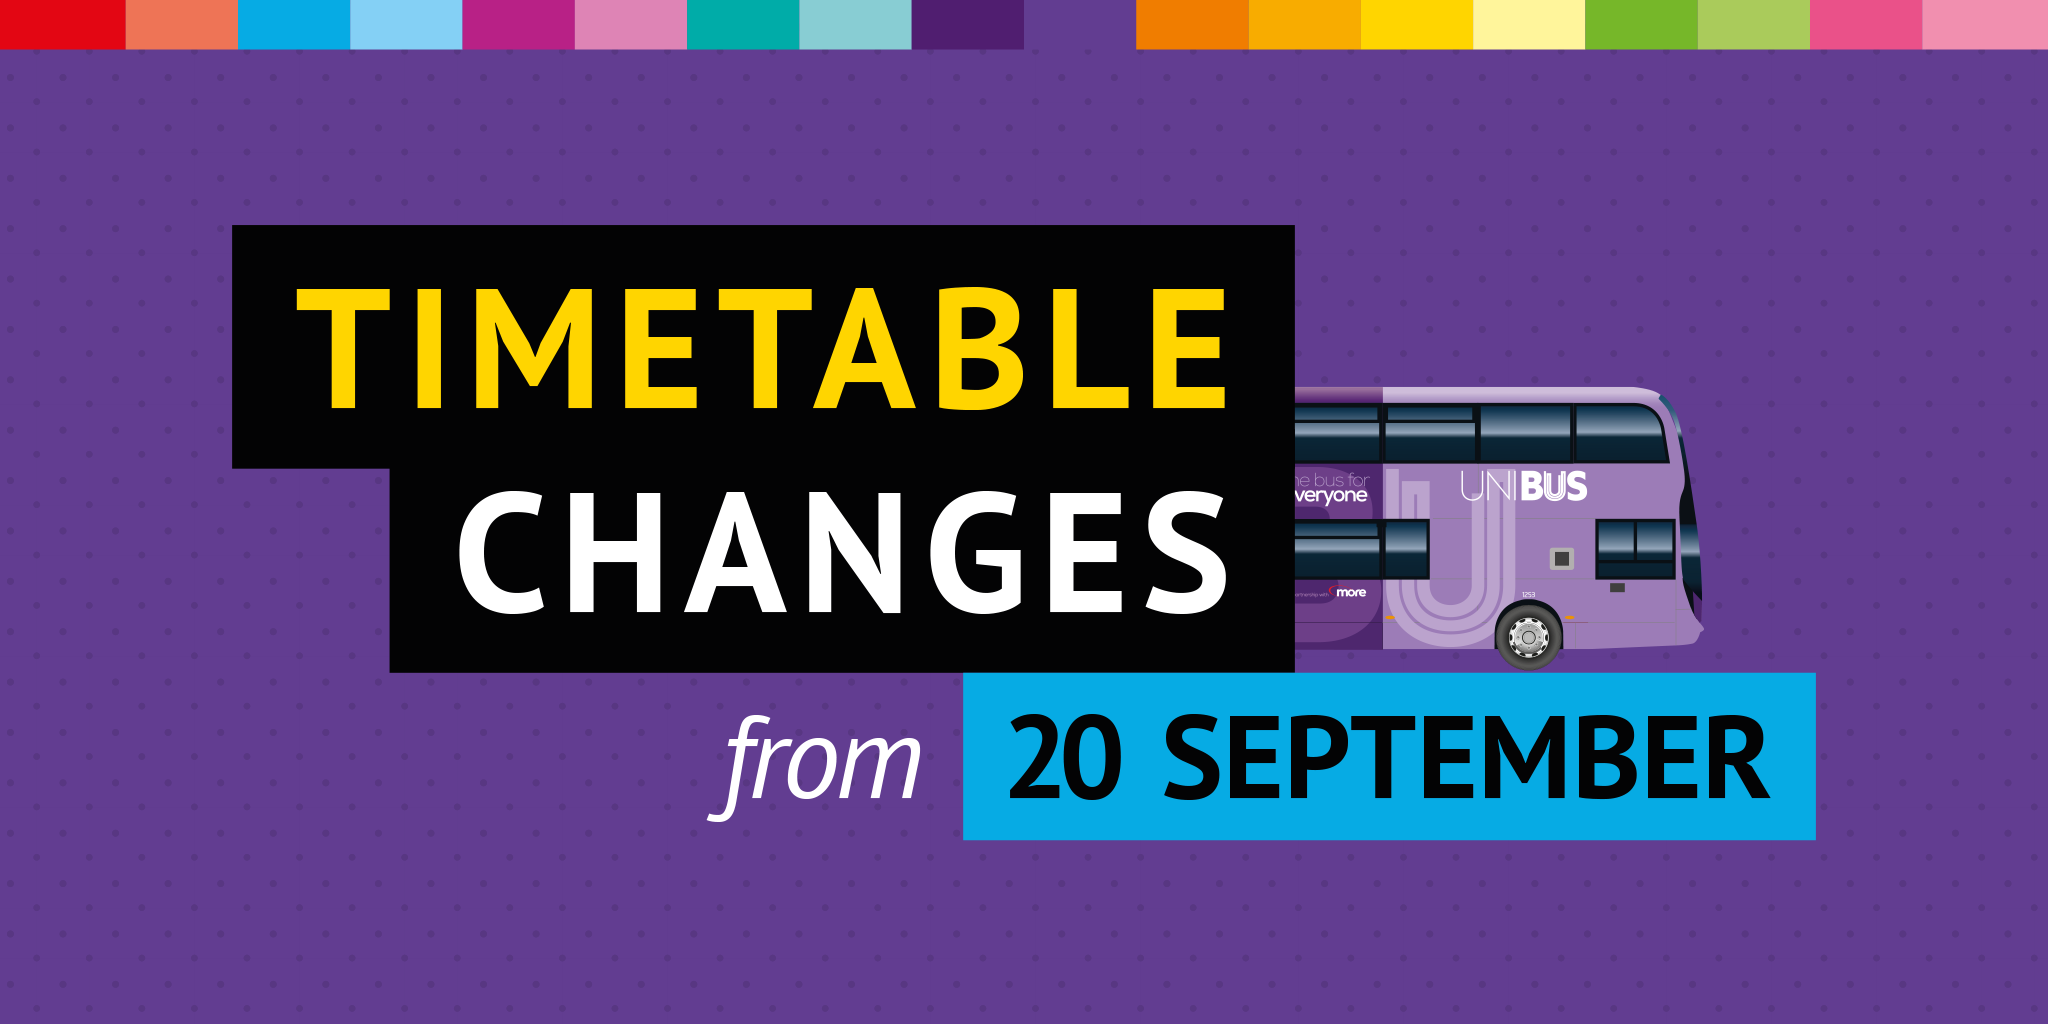 Photo of a UNIBUS with text 'timetable changes from 20th September